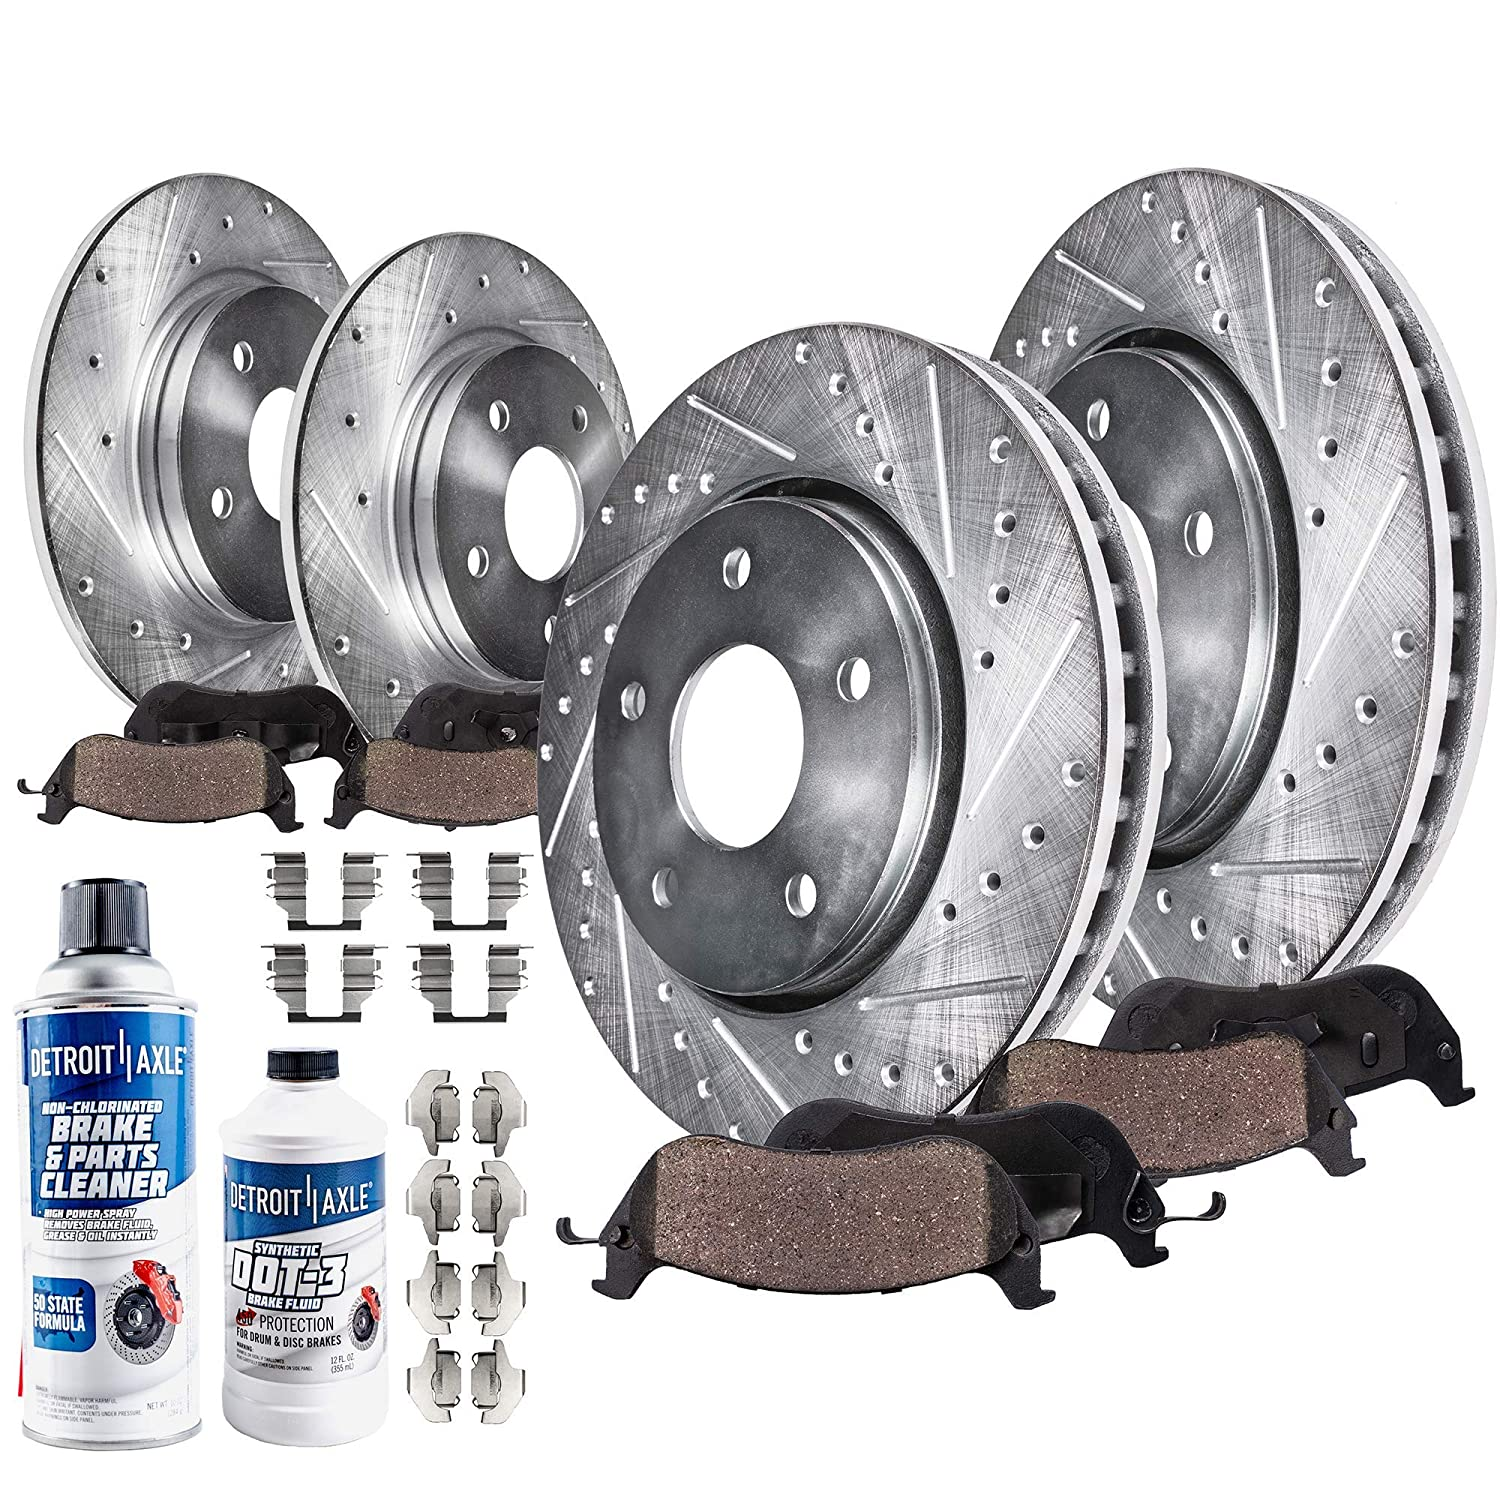 2003 2004 for Toyota Camry Front /& Rear Brake Rotors and Pads